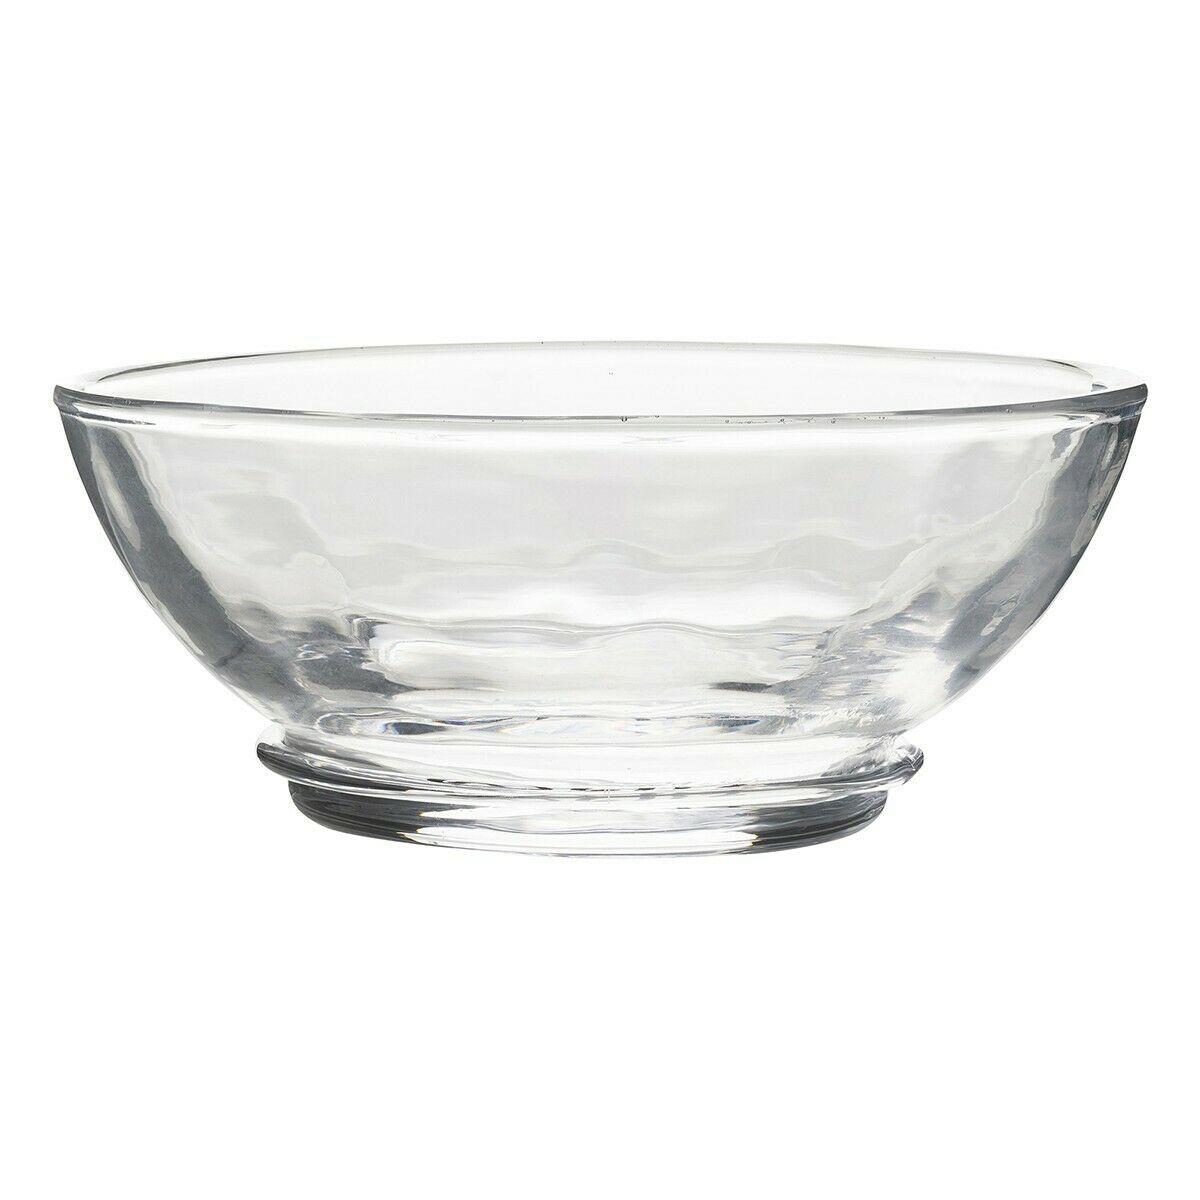 Juliska Carine clair céréales Ice Cream Bowl-Lot de 4